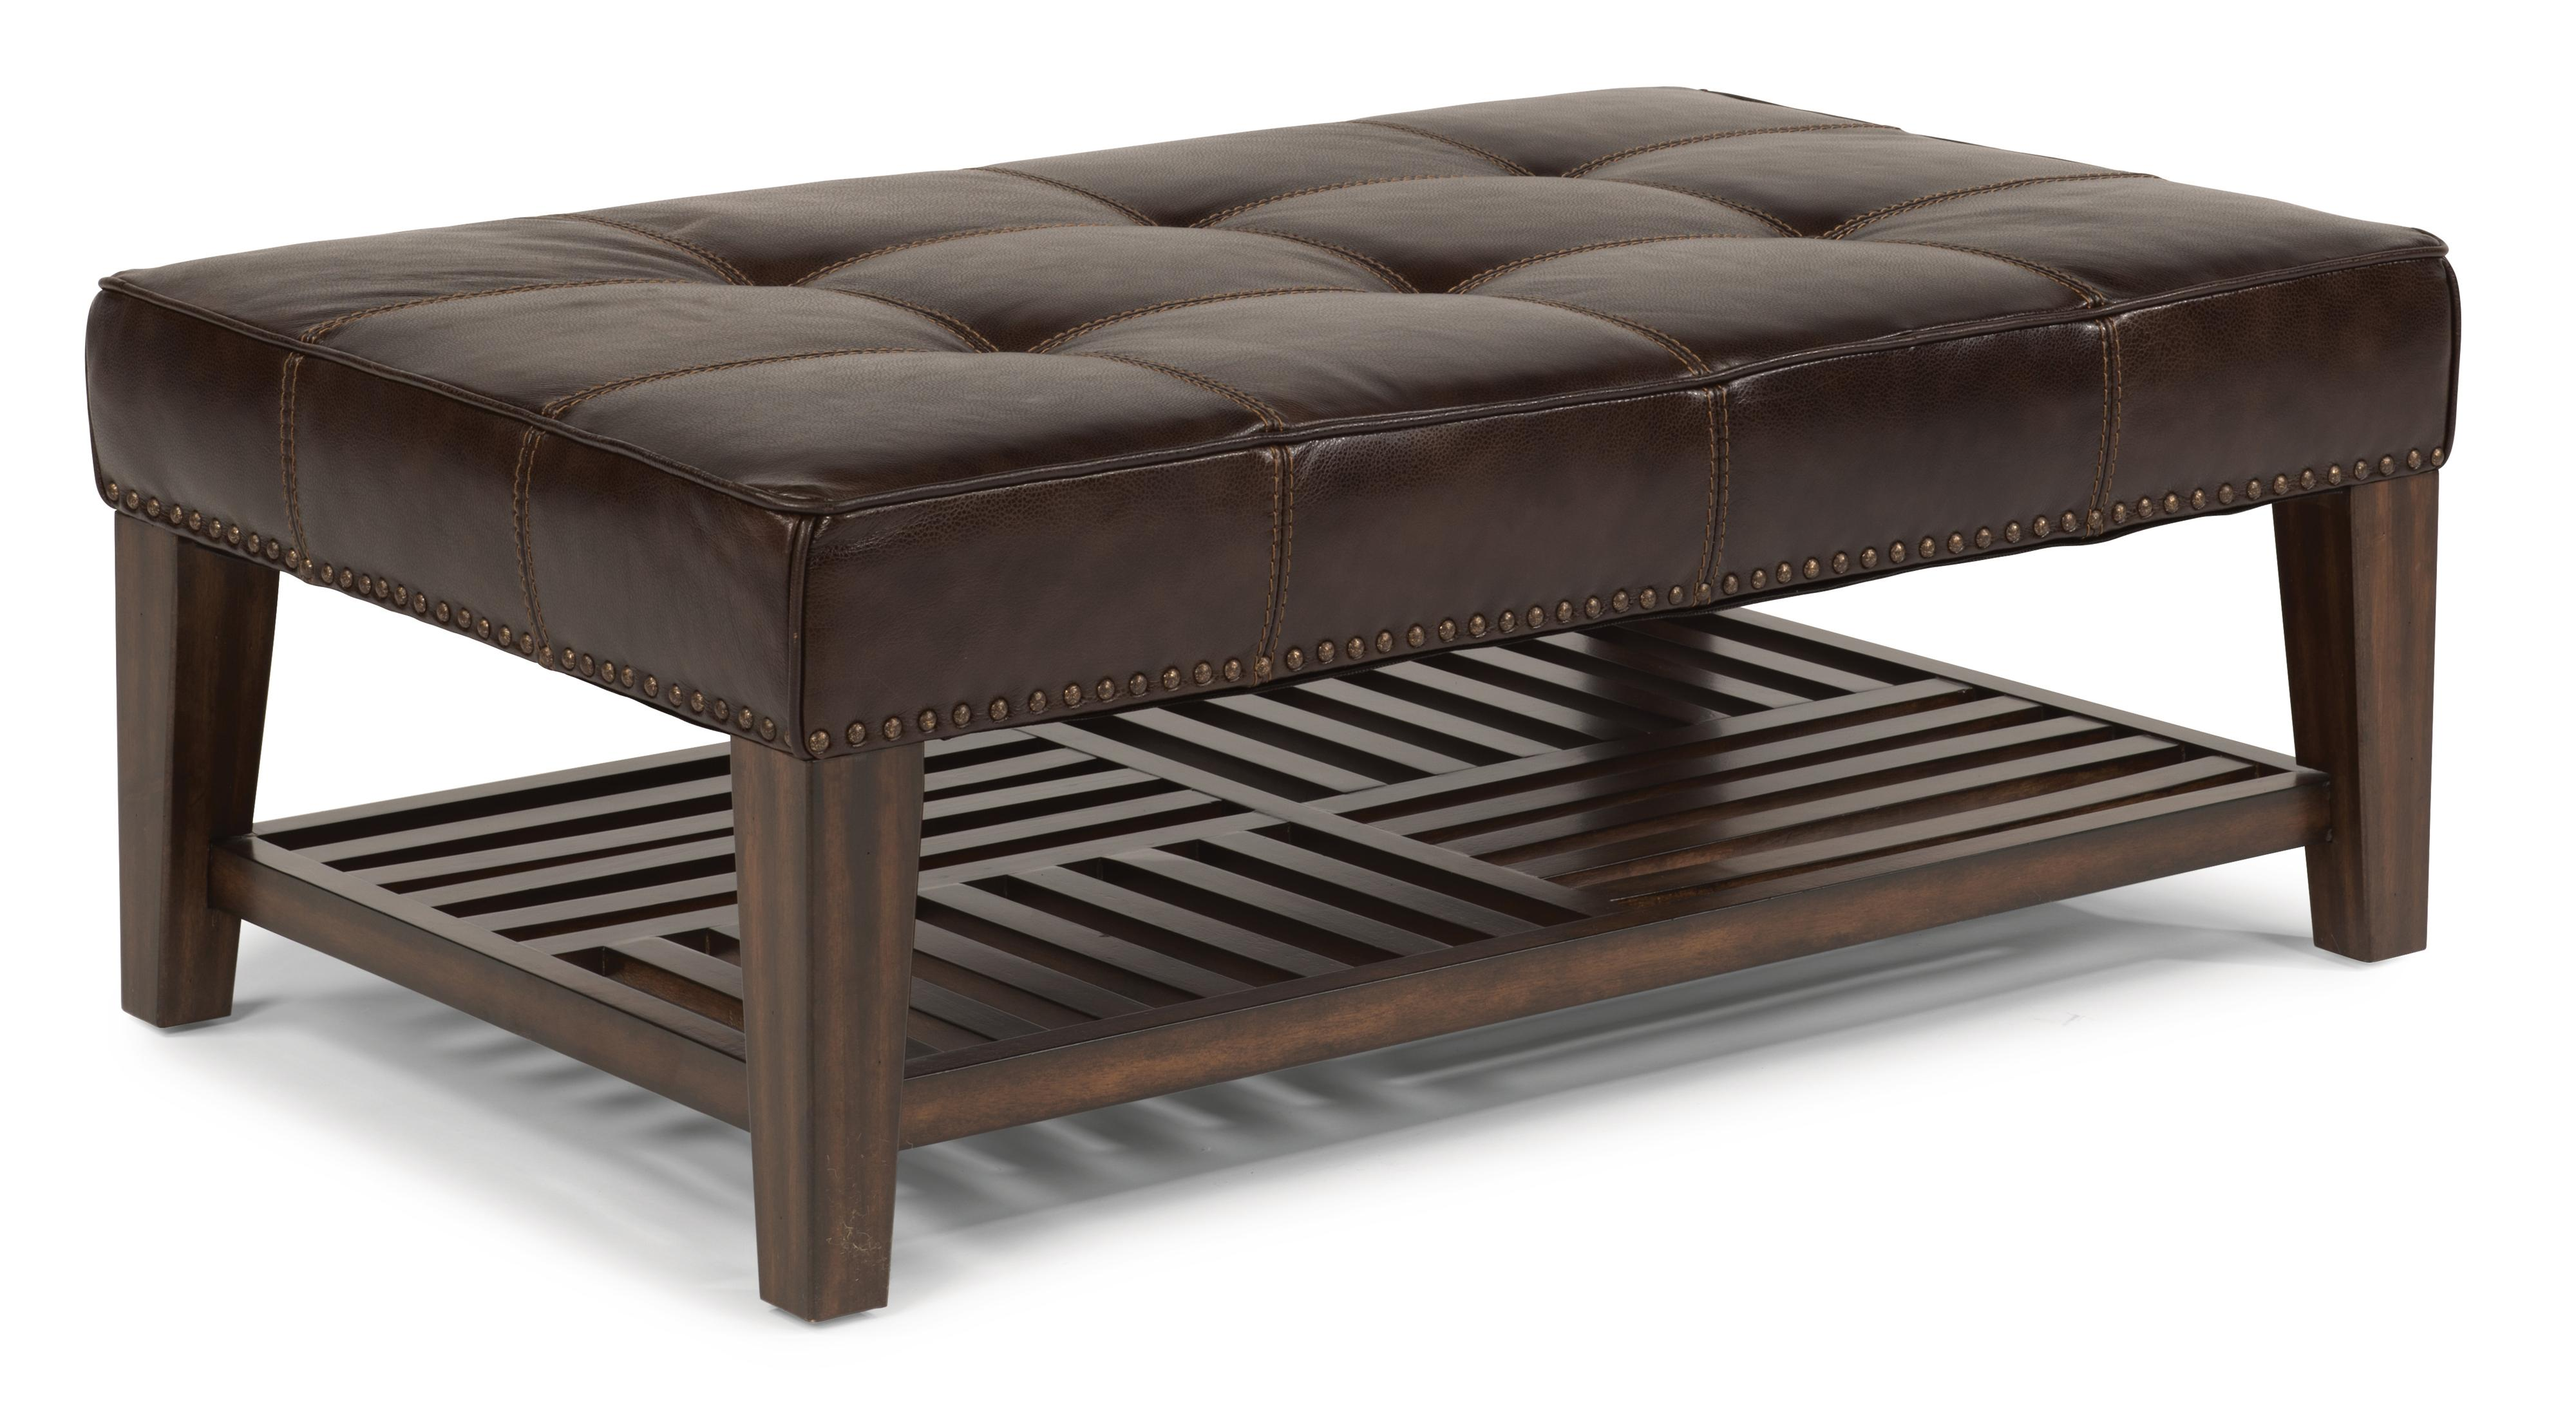 Ottoman Upholstery Latitudes Port Royal Upholstered Cocktail Ottoman With Wood Shelf And Nailhead Trim By Flexsteel At Olinde S Furniture